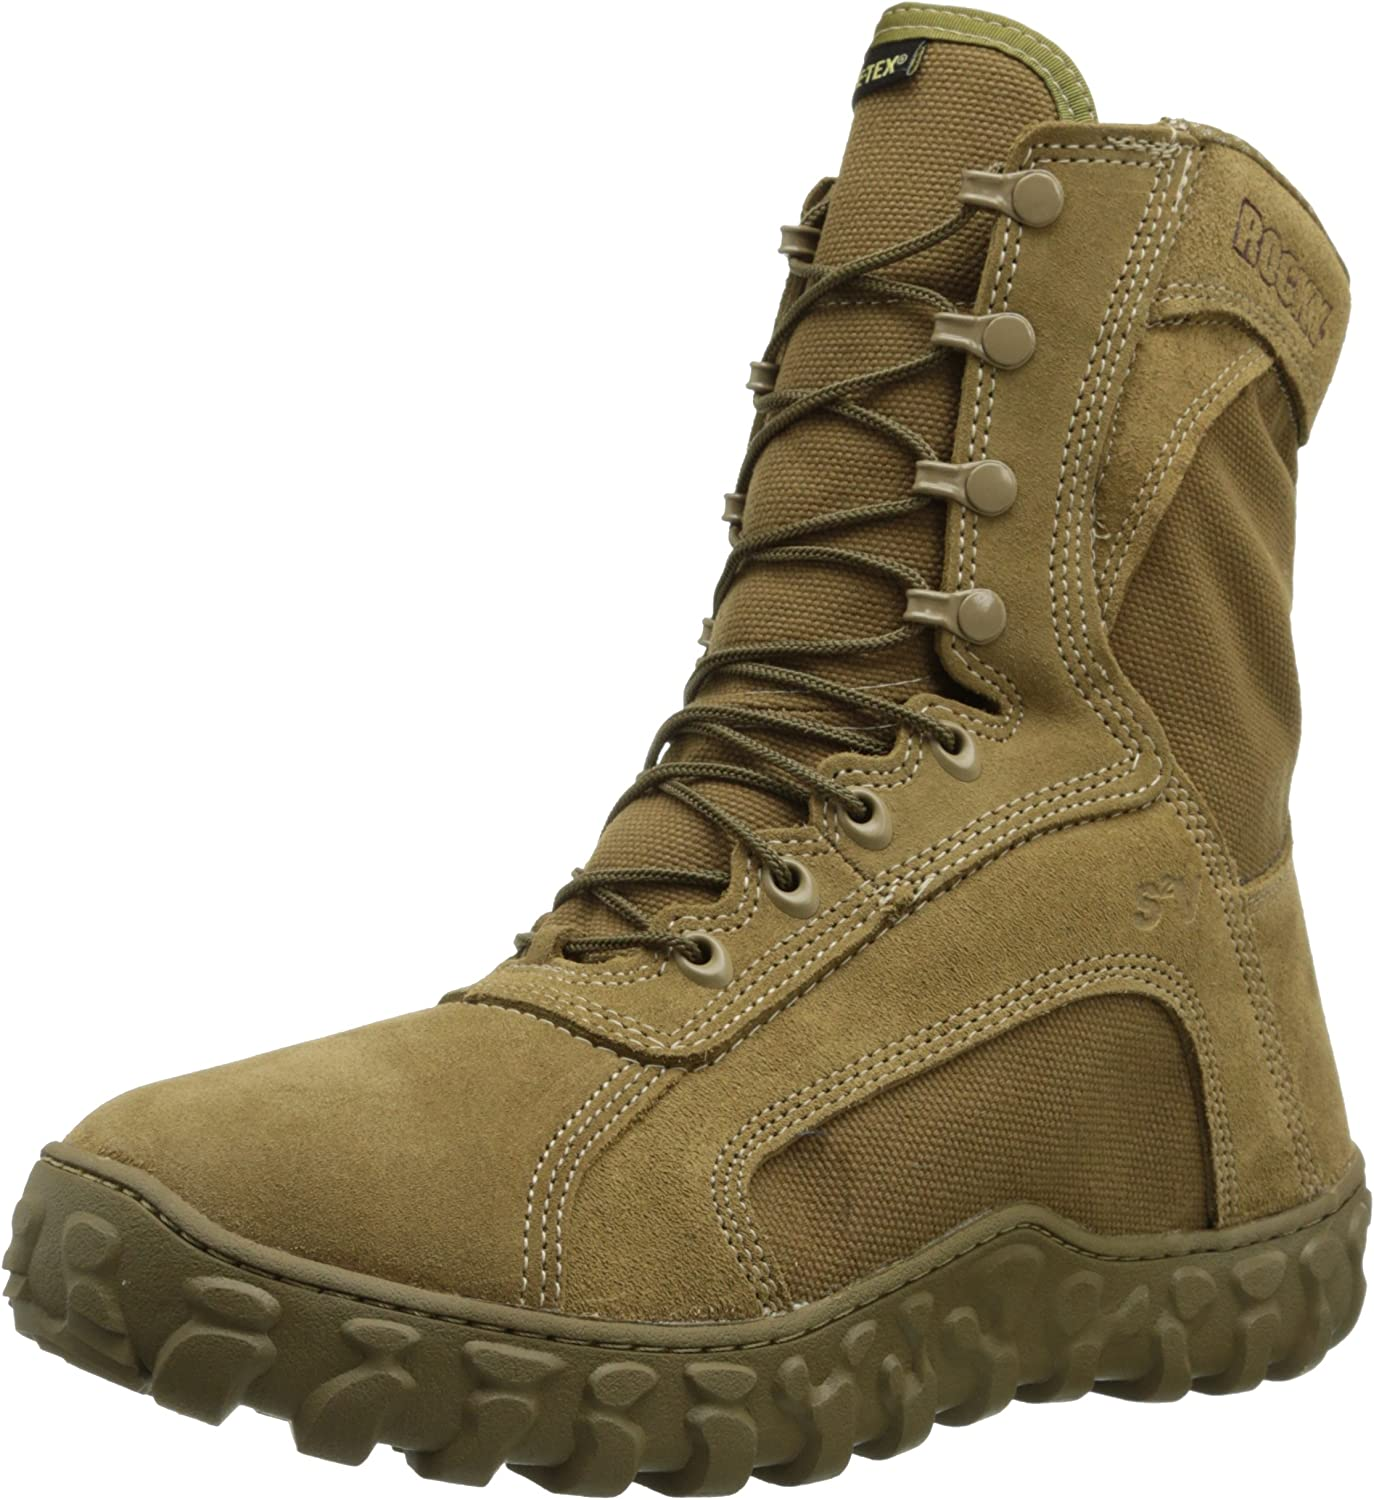 Rocky Men's Fq00104-1 Popular overseas Military and Tactical NEW before selling ☆ Boot